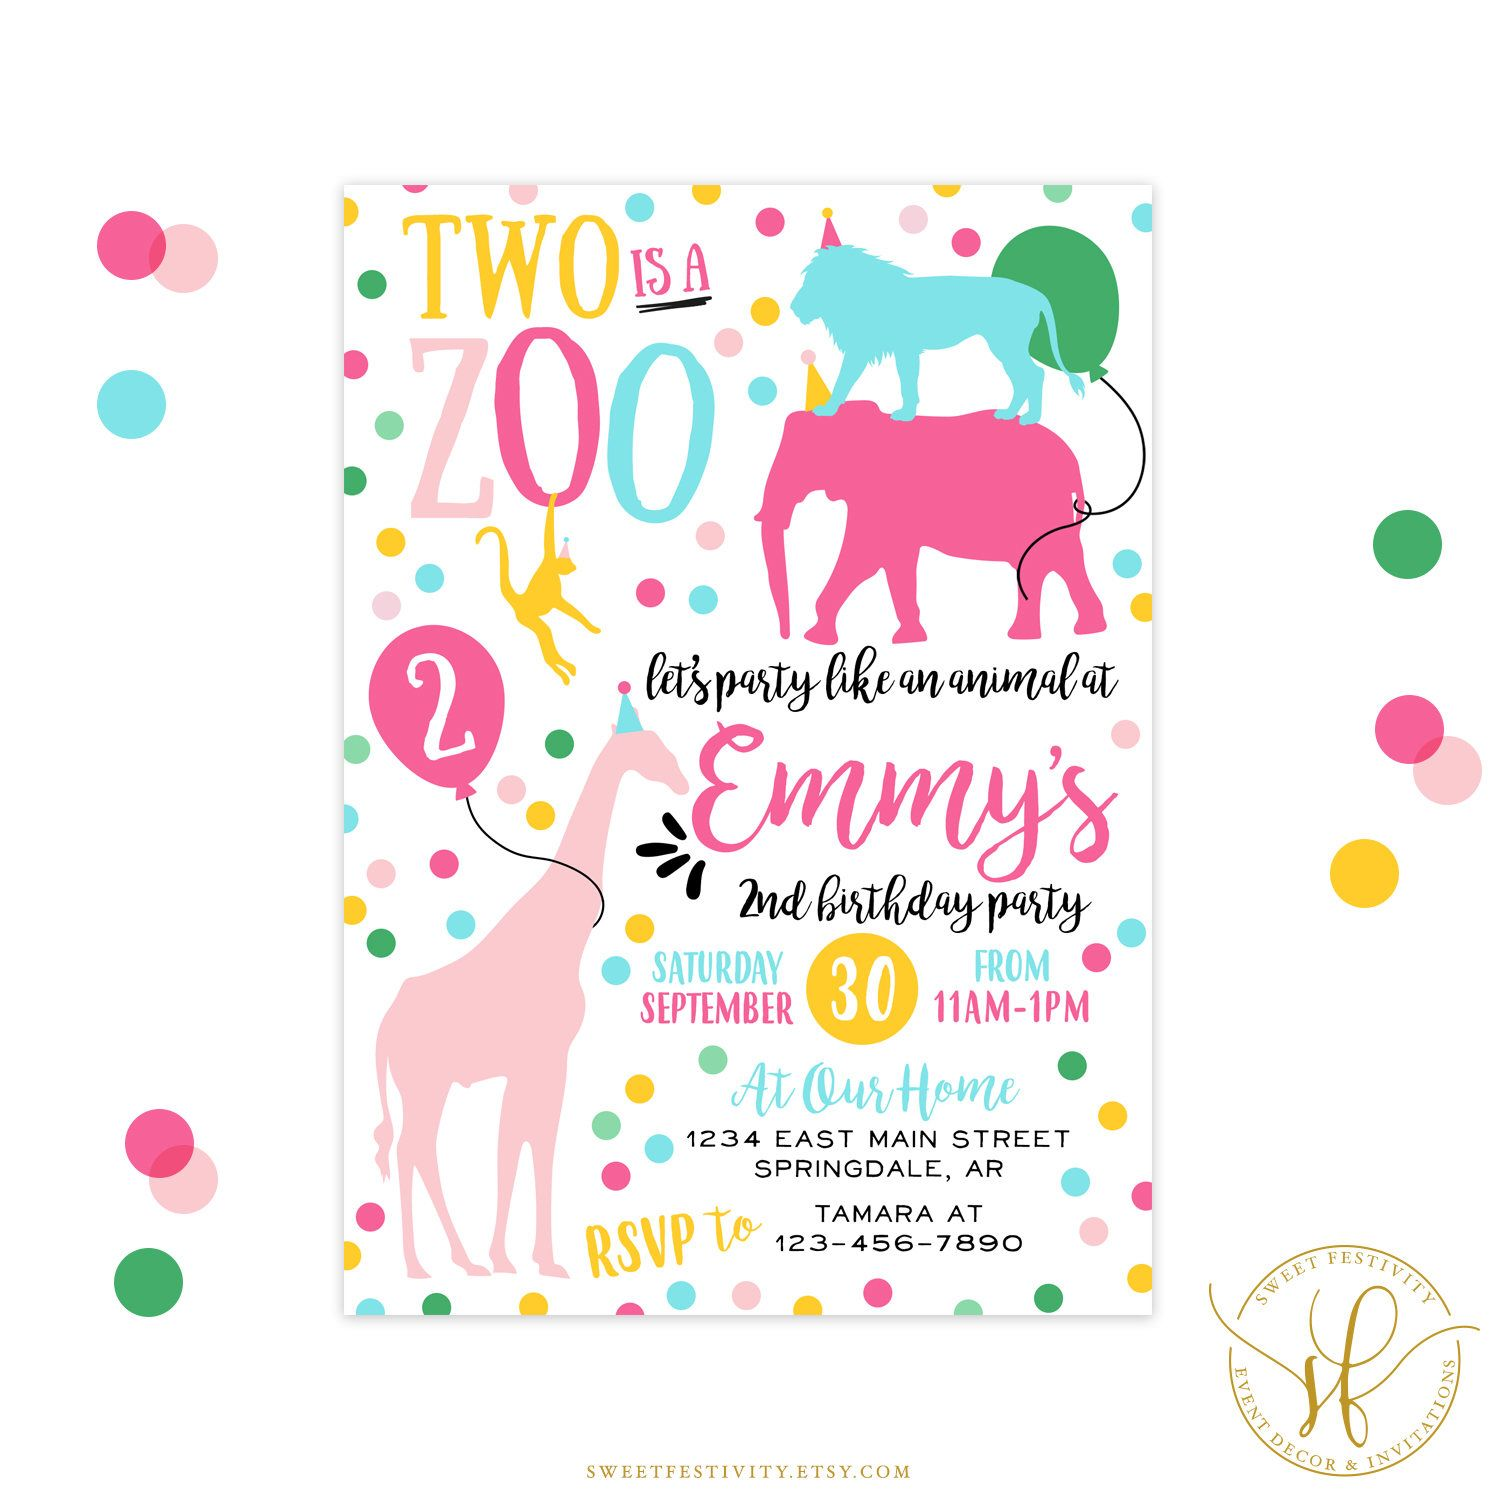 Party Animal Invitation | Party Like an Animal | Two is a Zoo ...